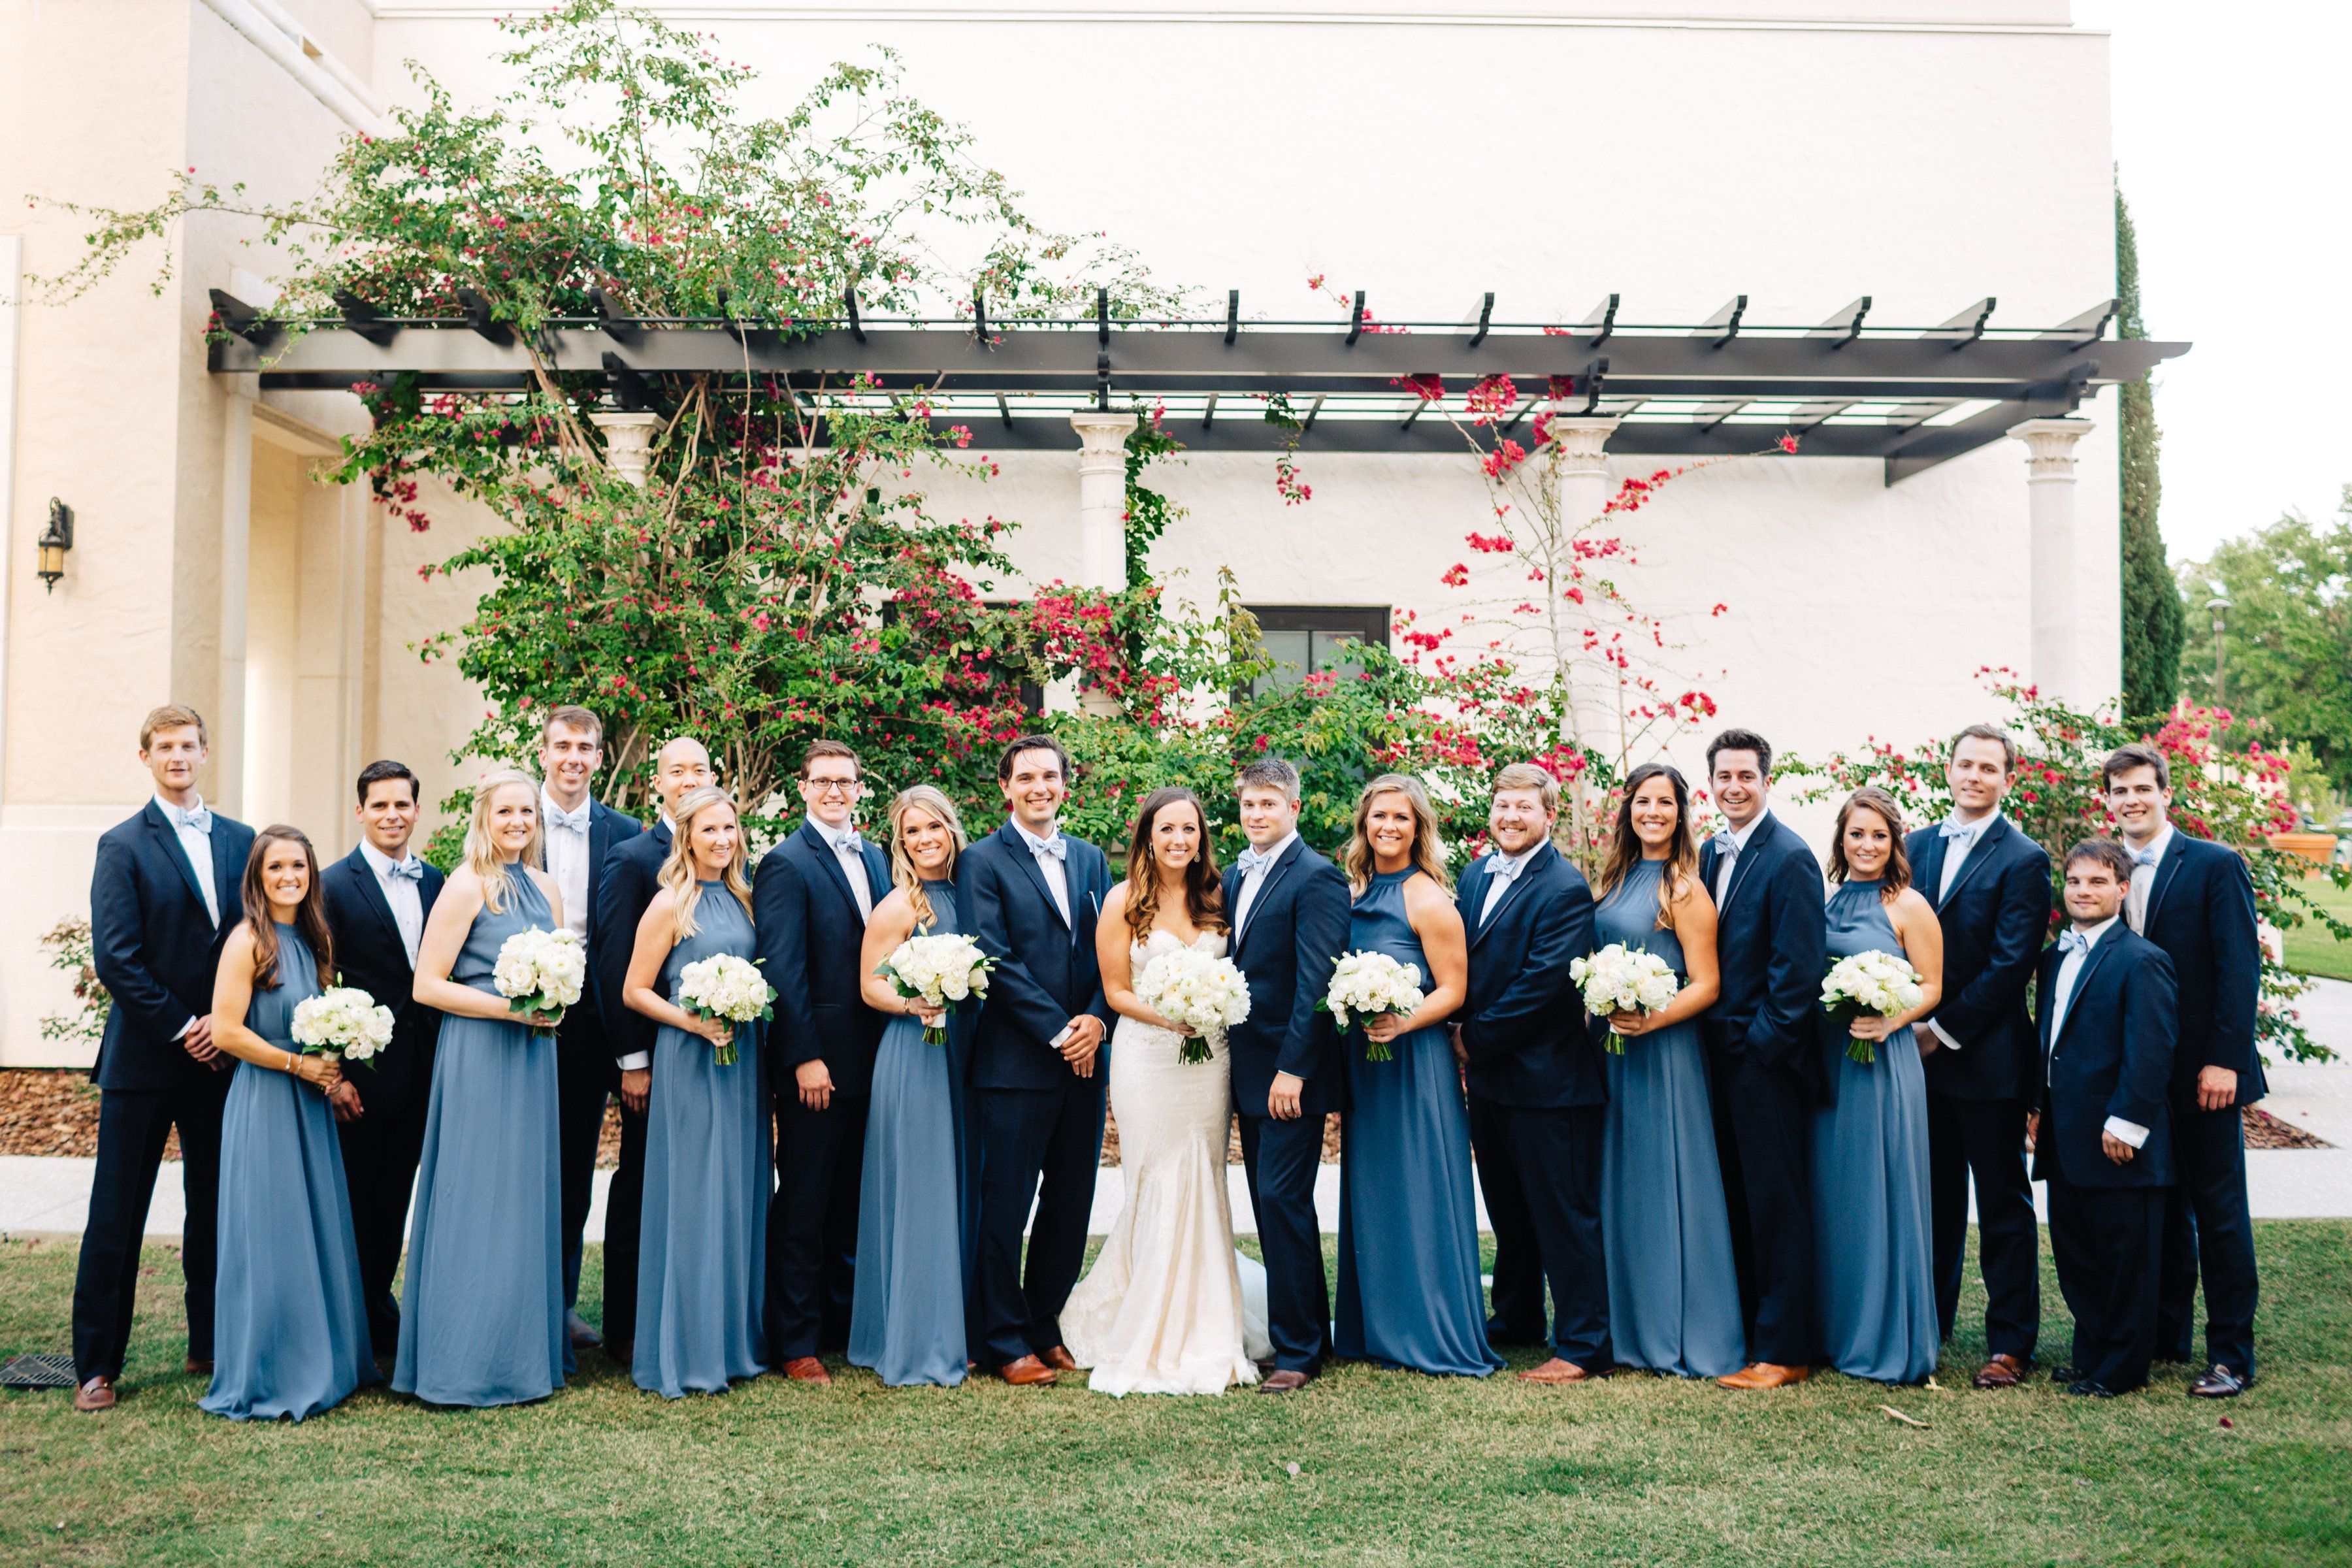 Gromsmen In Navy Suits And Bridesmaids In Blue Gowns The Bridesmaids An Steel Blue Bridesmaid Dresses Slate Blue Bridesmaid Dresses Wedding Bridesmaid Dresses